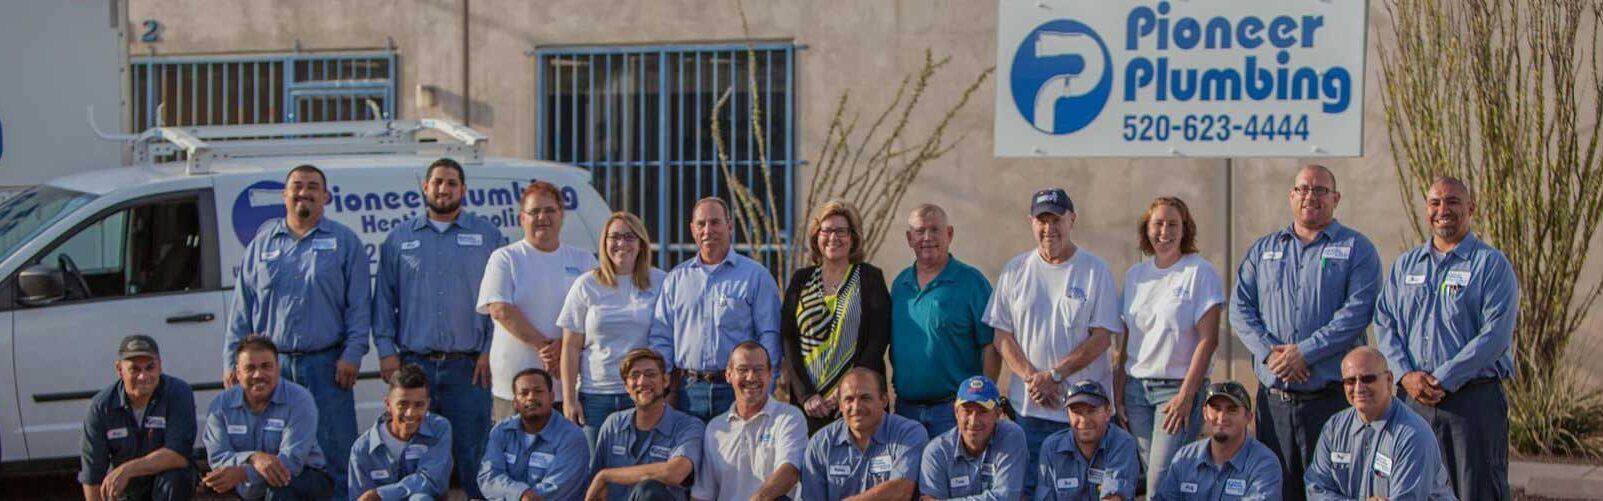 Pioneer Plumbing: A Team of Dedicated Professional Plumbers, HVAC Specialists and Construction Workers